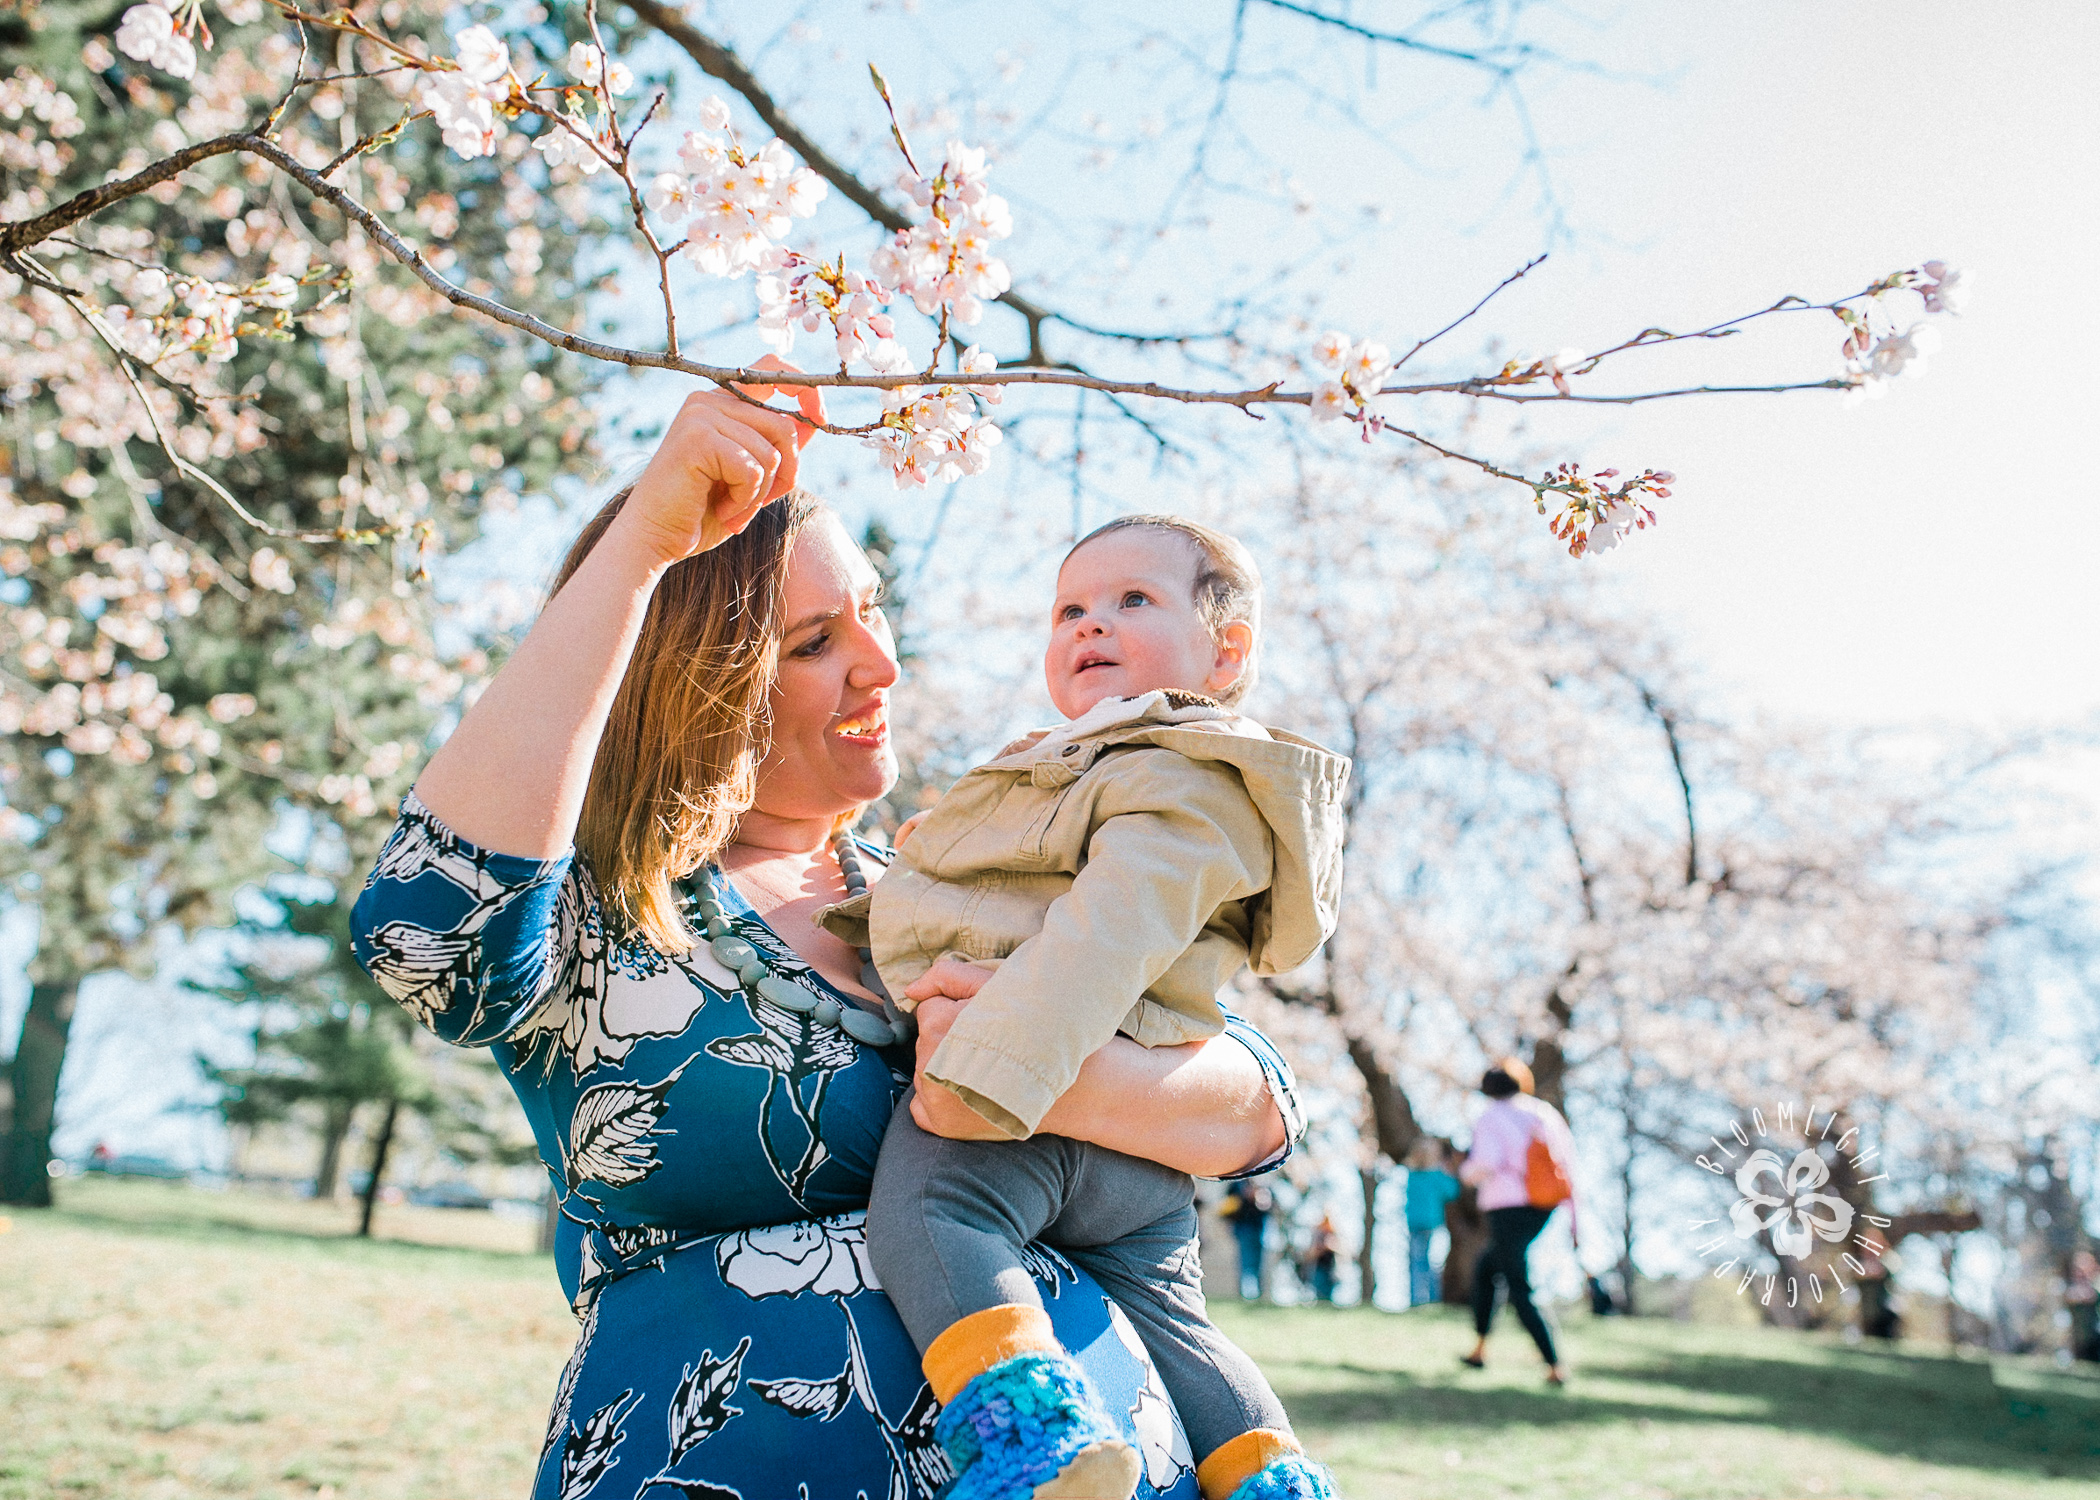 cherry-blossom-mommy-and-me-Toronto-photographer.JPG